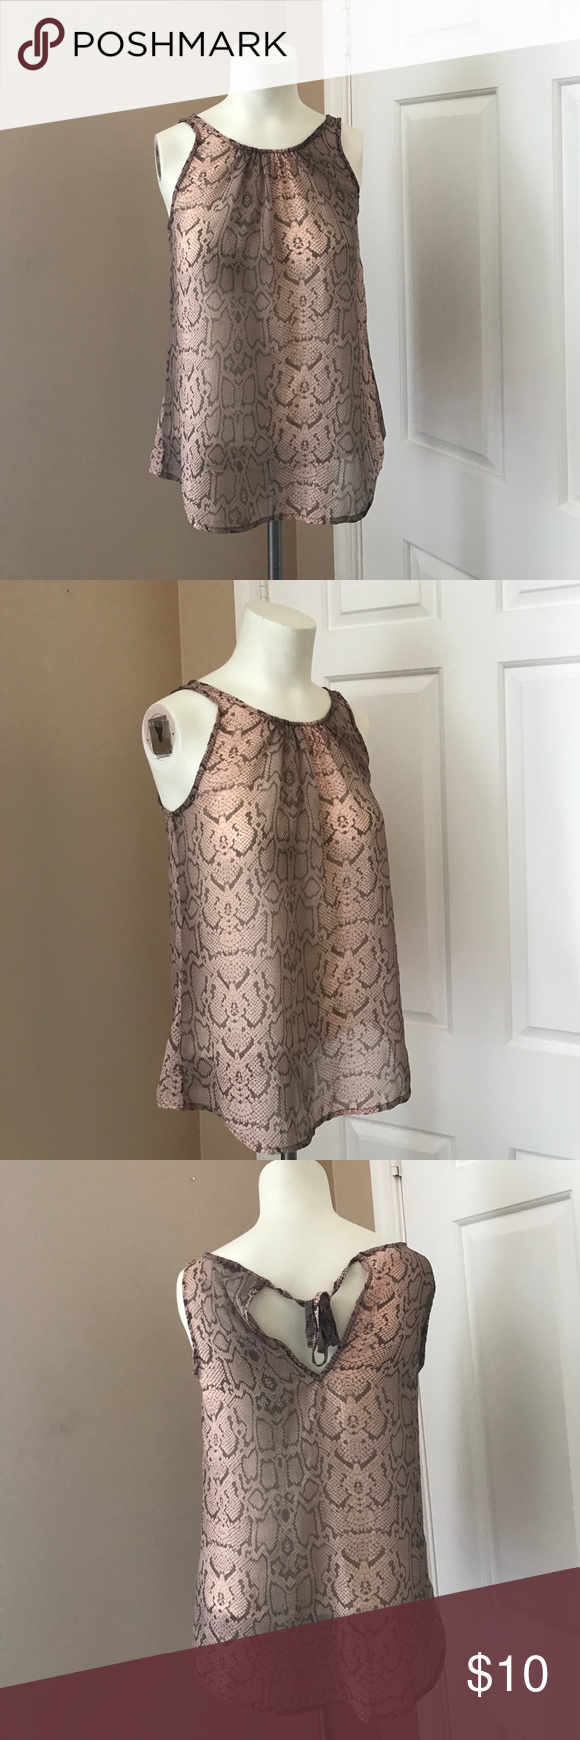 Old Navy Tank Gently worn, good condition. Sheer tank. Tie back detail. Soft pink and grey combo. Old Navy Tops Tank Tops